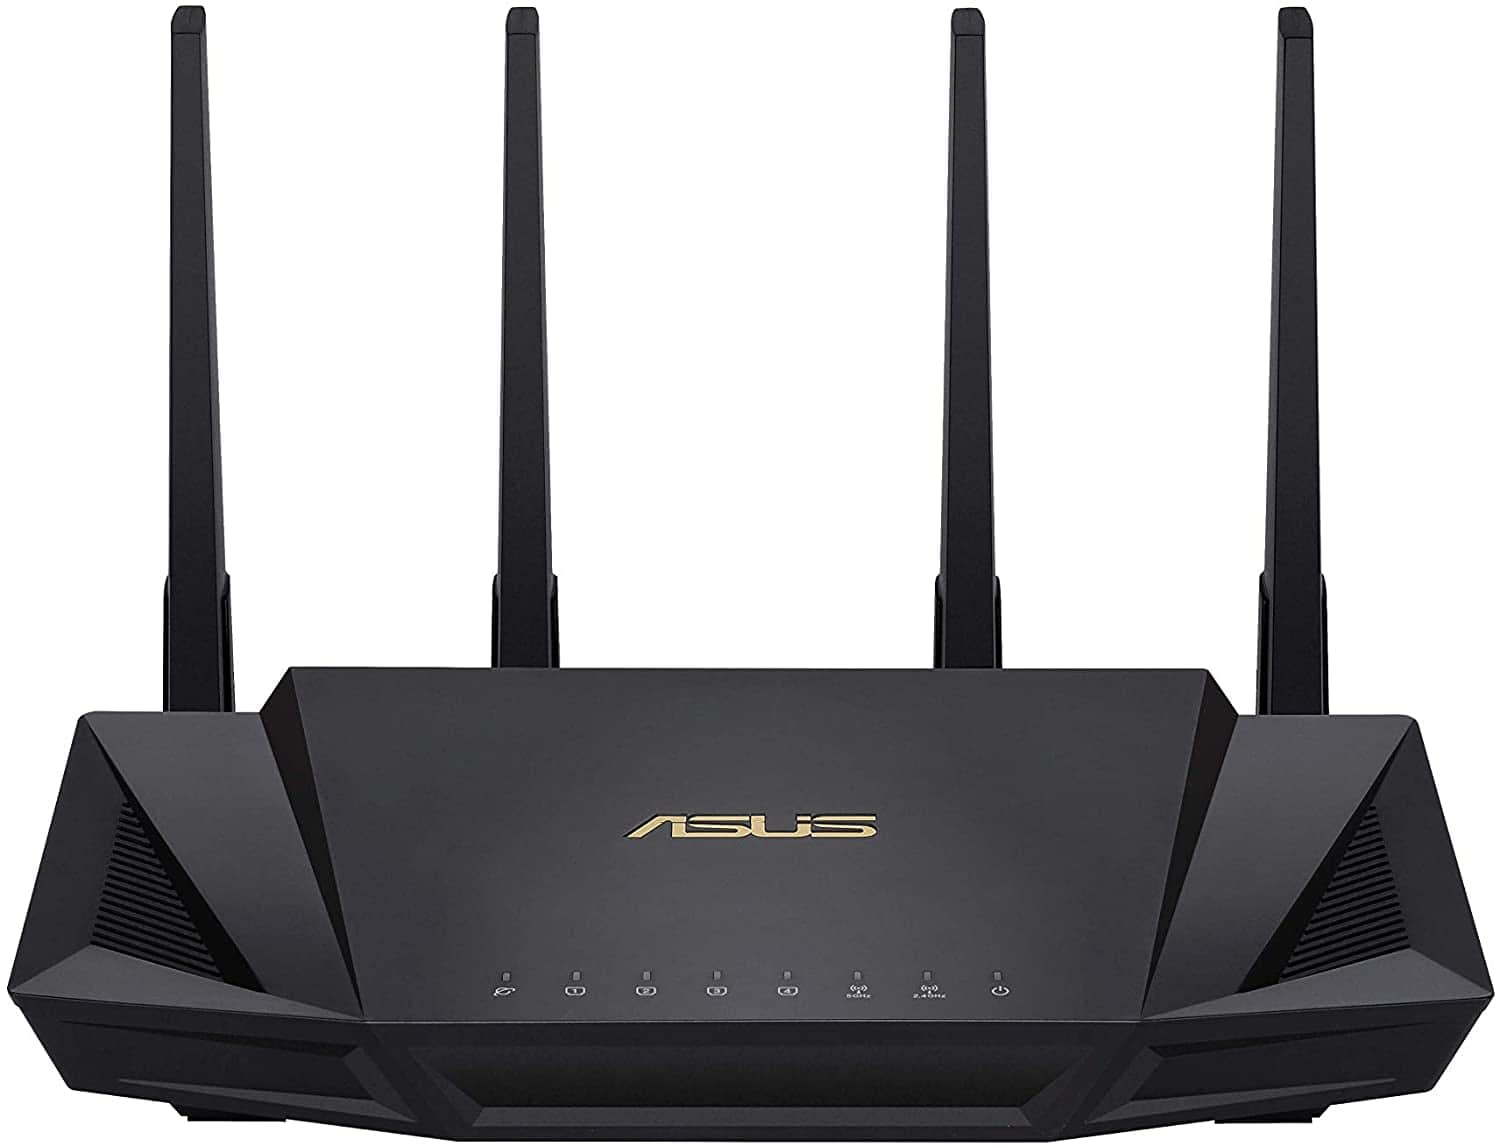 ASUS RT-AX3000 Dual Band WiFi 6 Router $149.99